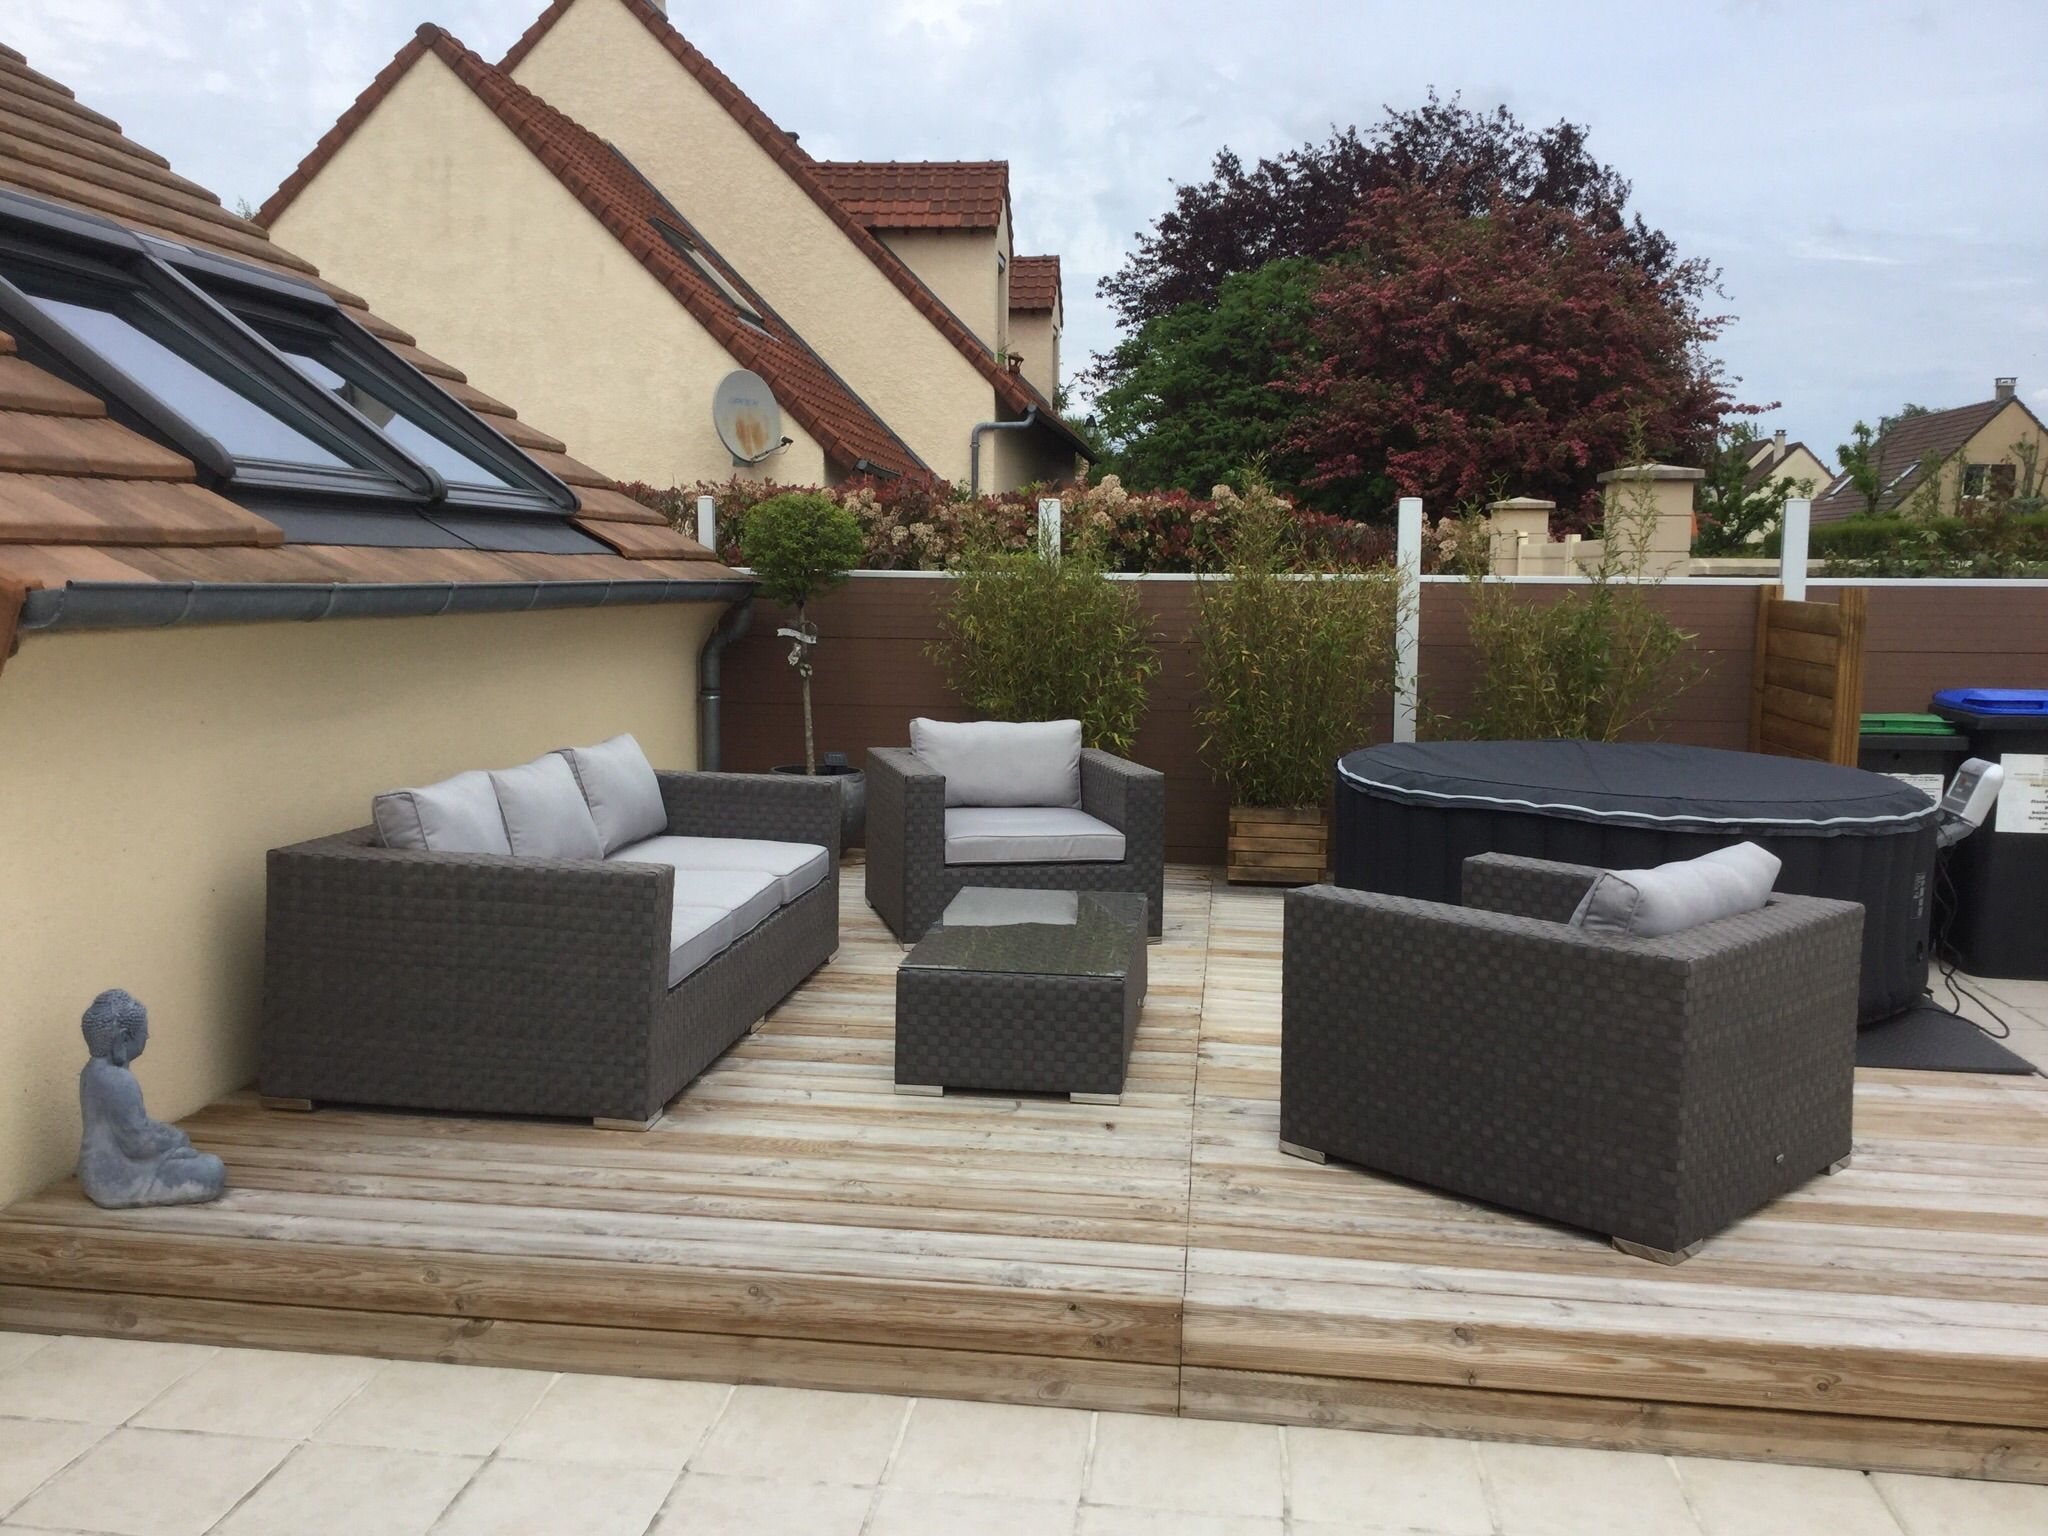 Epingle Par C Courtois Sur Mobilier Salon De Jardin